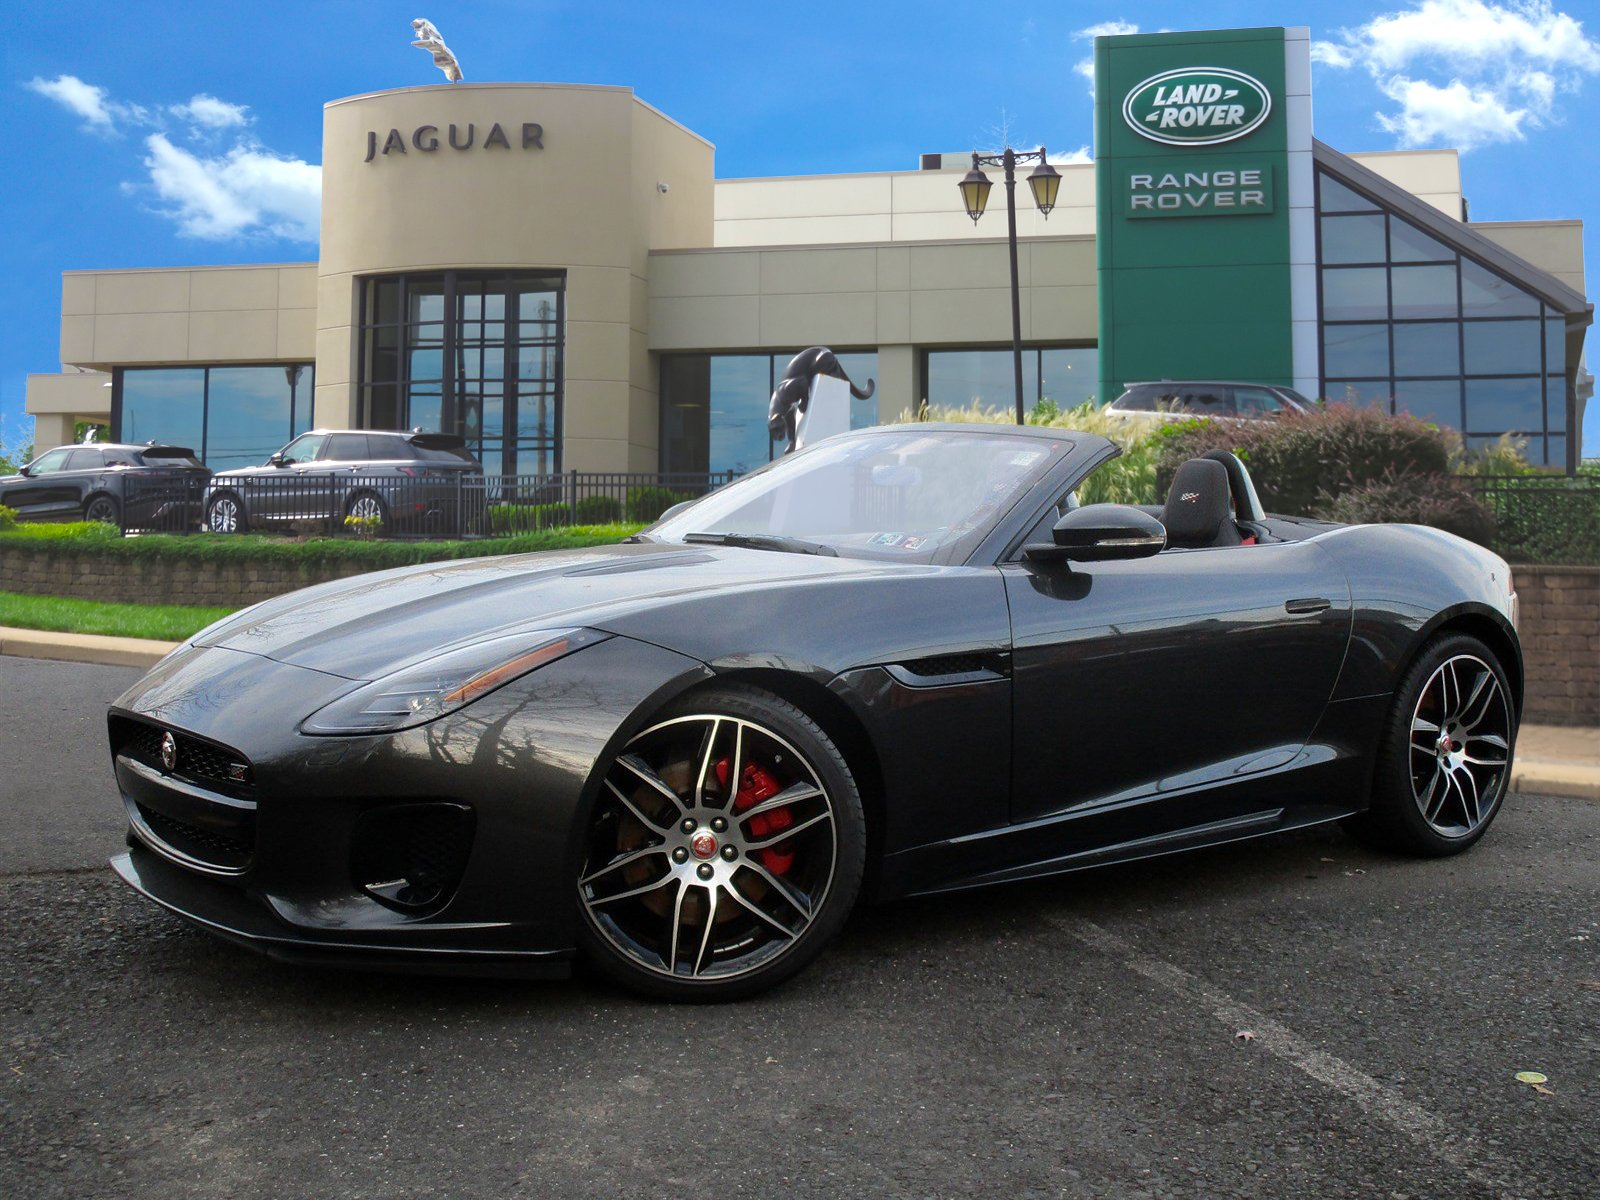 Cost Of A Jaguar F Type Lovely New 2020 Jaguar F Type P300 with Navigation